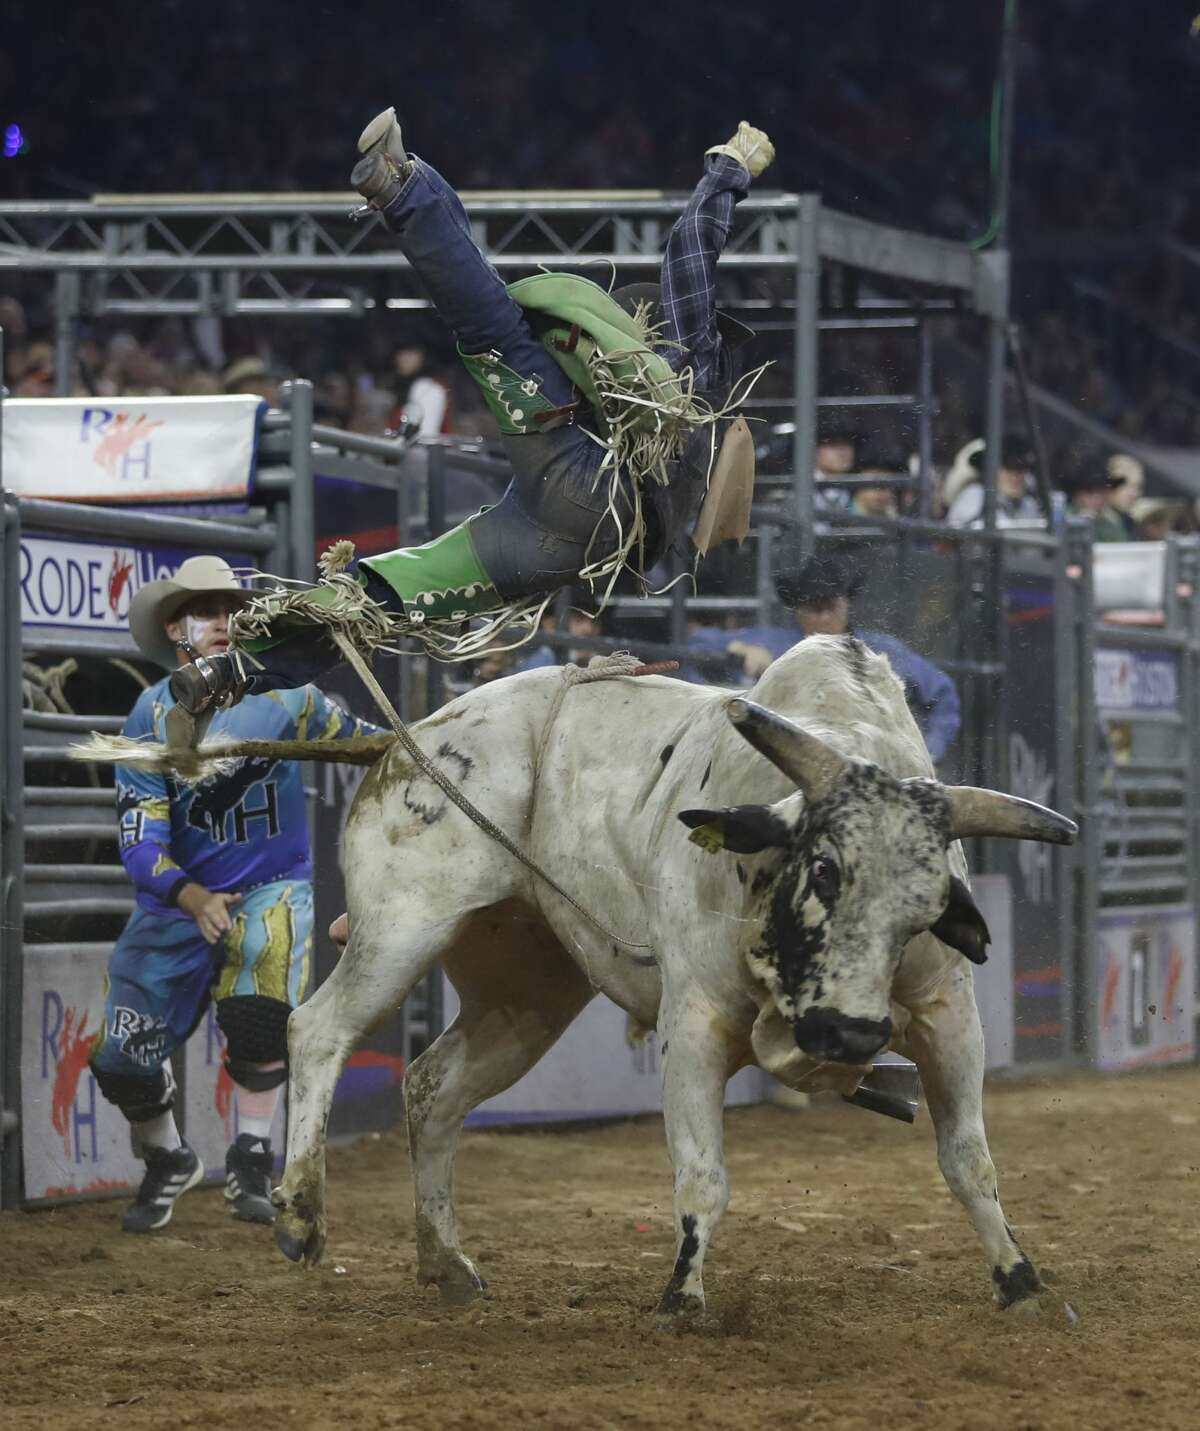 Aaron Pass gets tossed into the air by Wild N Free during the bull riding, wild card competition at the Houston Livestock Show and Rodeo at NRG Park, Friday, March 24, 2017, in Houston. ( Karen Warren / Houston Chronicle )